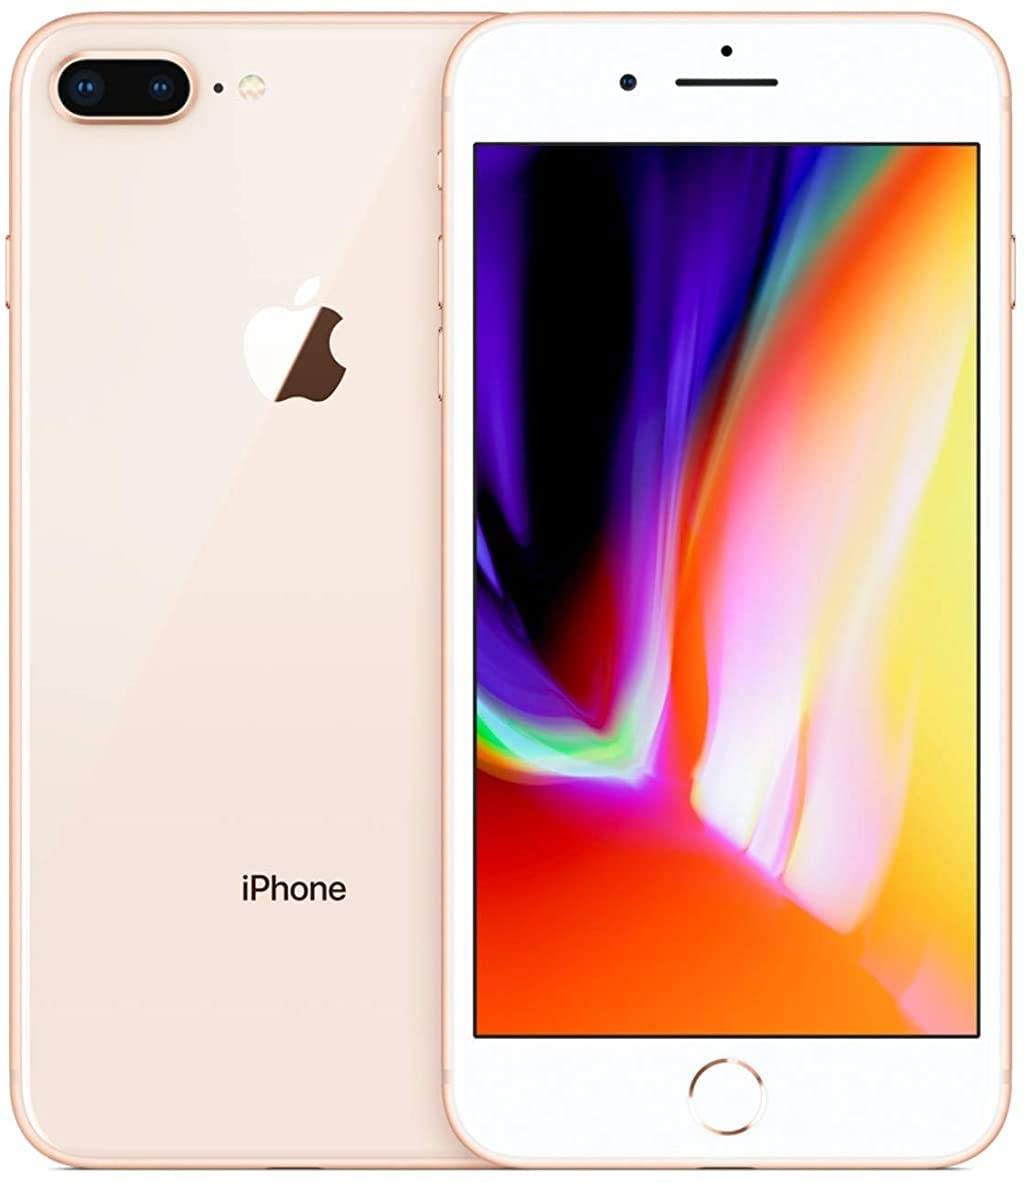 Apple iPhone 8 Plus, 64GB, Gold - For Verizon (Renewed)